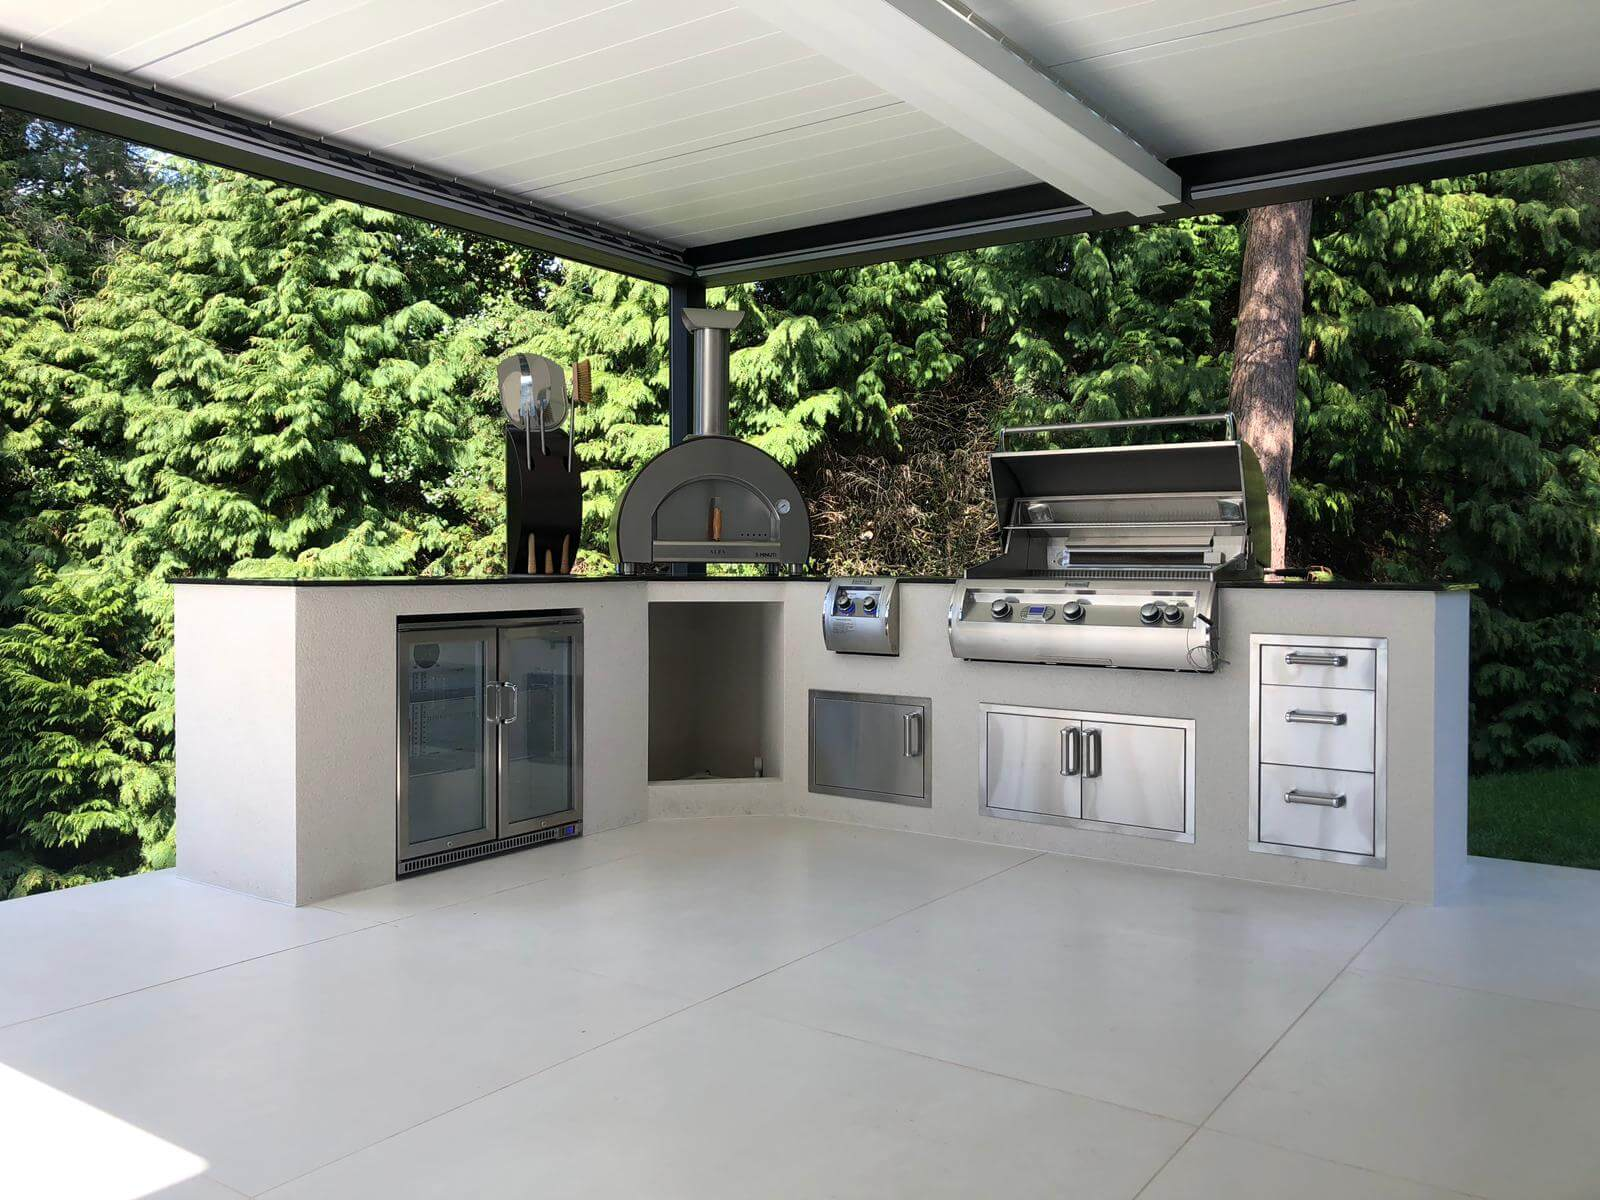 aos-kitchen-alfa-forni-outdoor-cooking